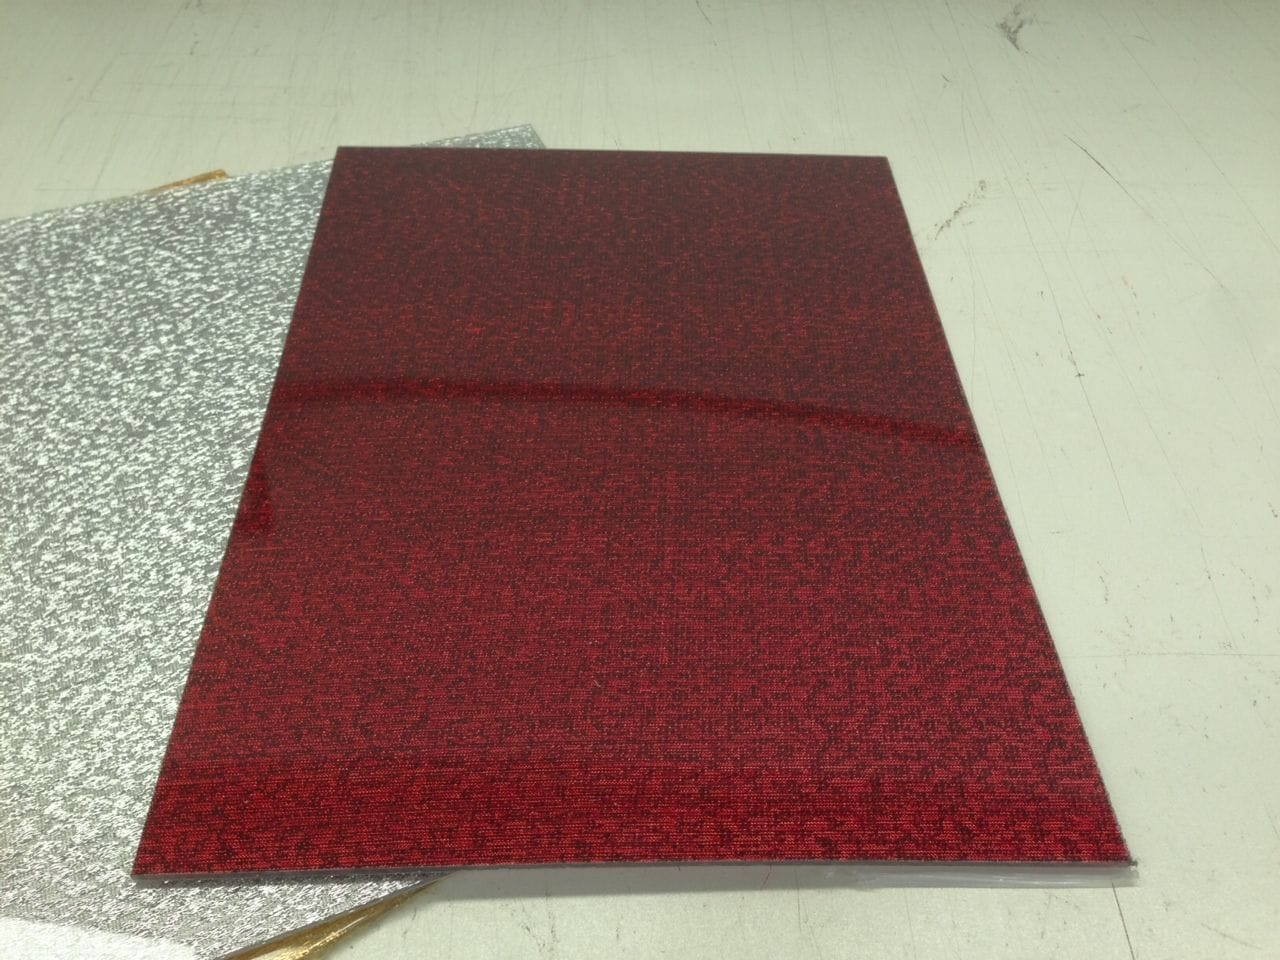 Acrylic RED Fabric A3 420x297x3mm CAST SHEET UV Stable NEW! 372 Exclusivestock